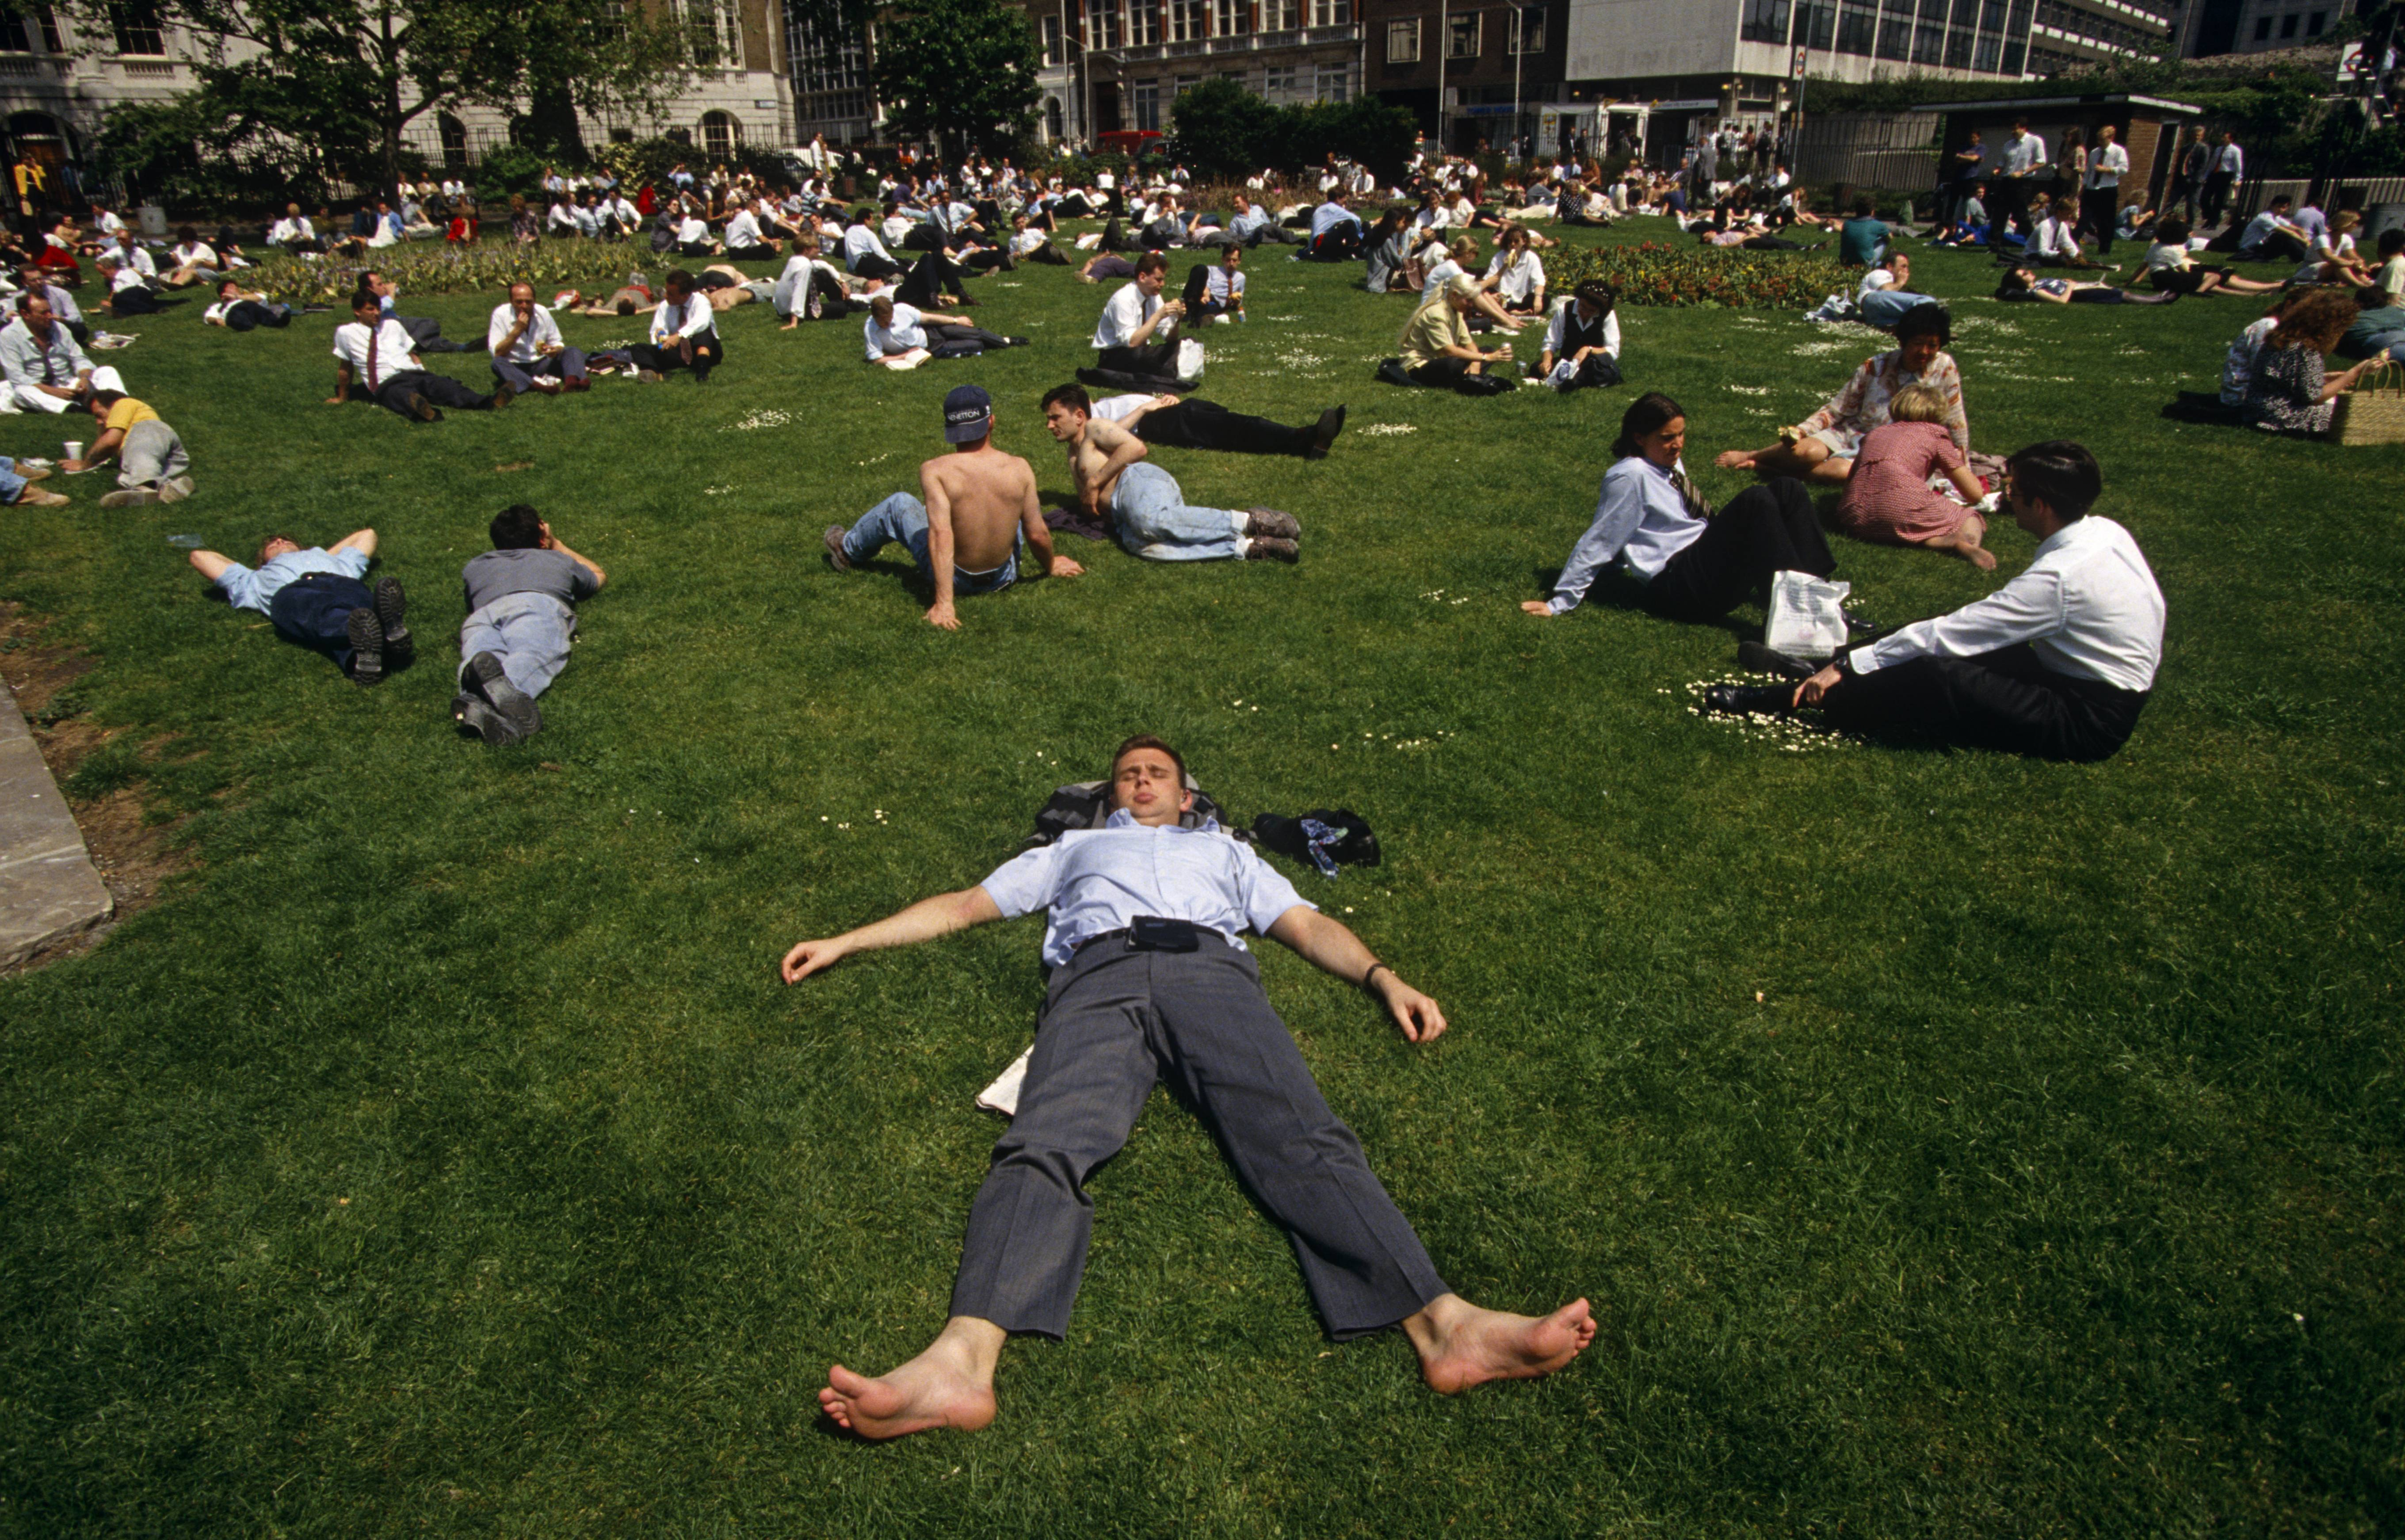 England - London - City office worker sunbathe during hot lunchtime